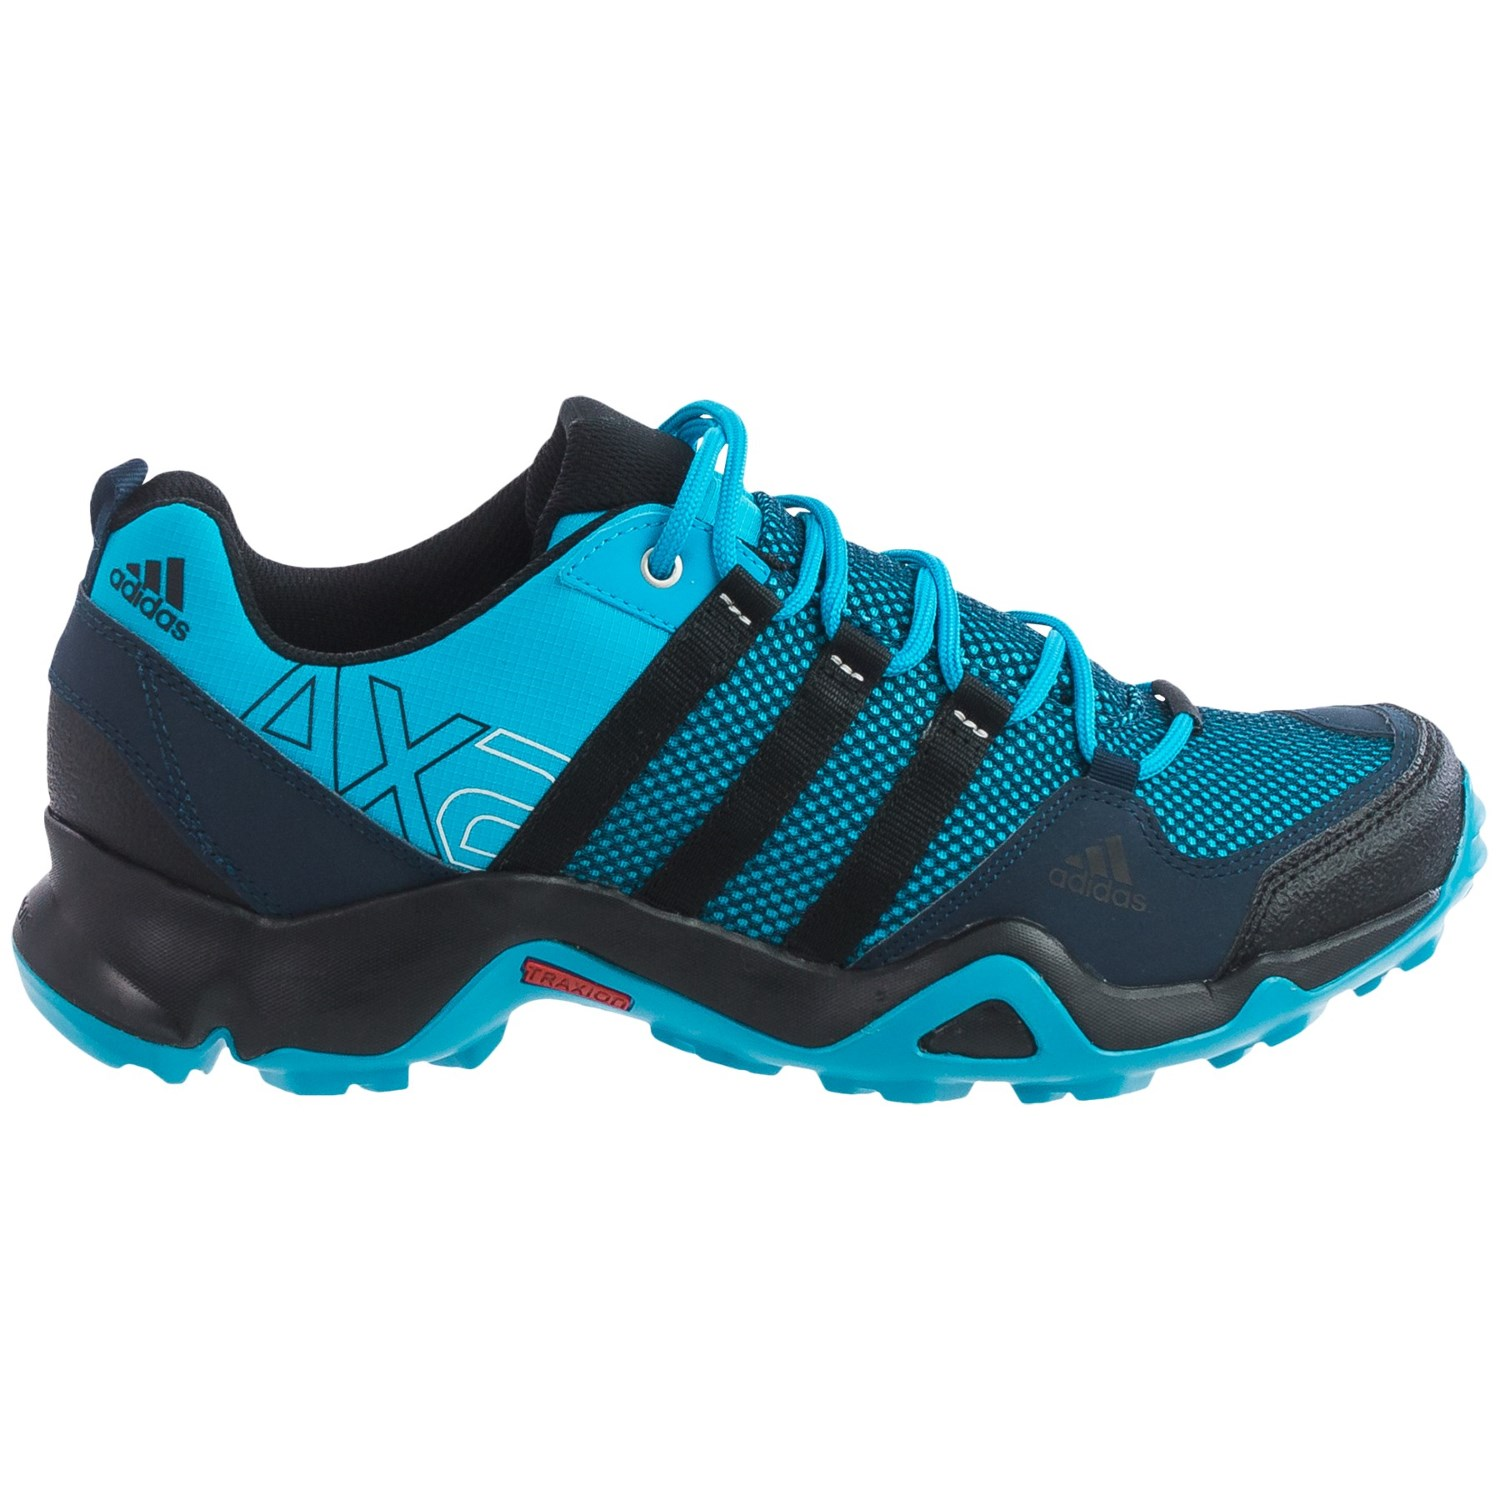 Adidas Outdoor Ax2 Hiking Shoes For Men Save 37